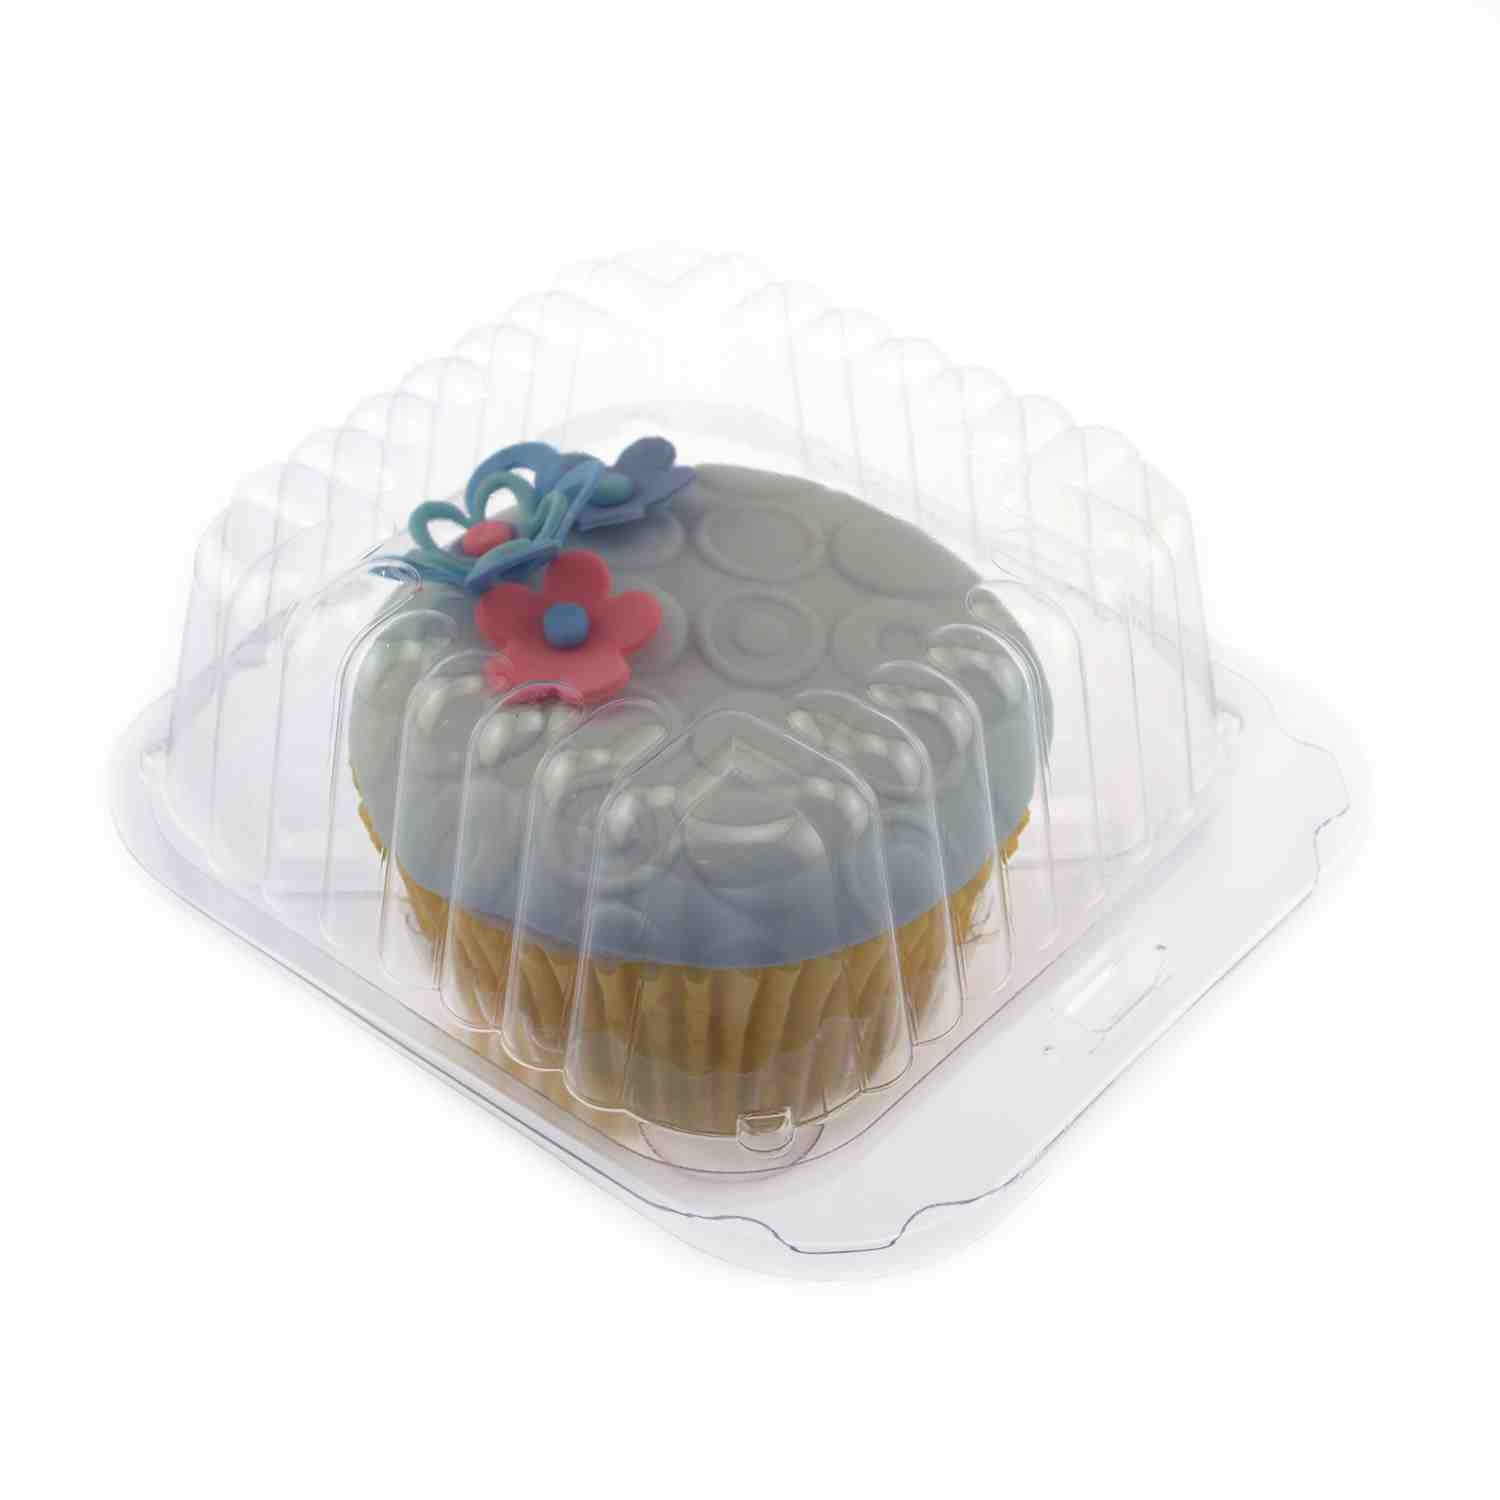 Plastic Shell - Holds One Jumbo Size Cupcake